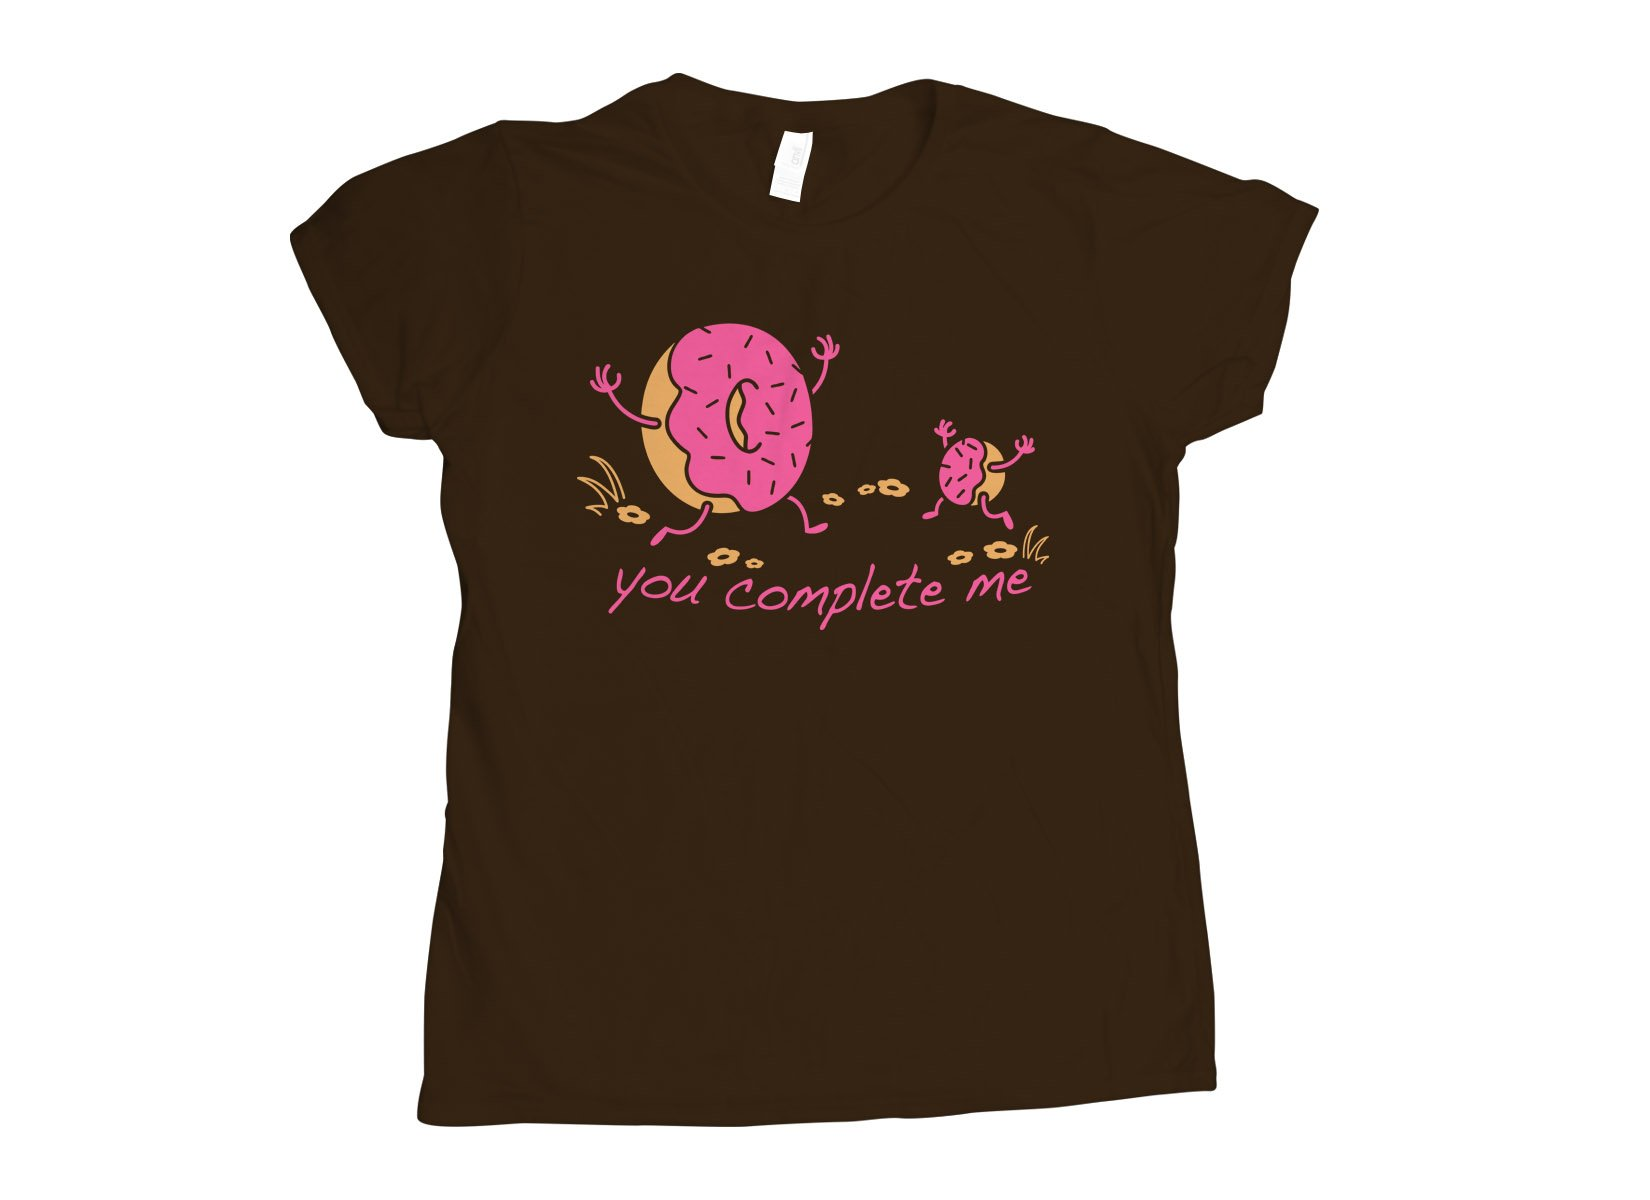 You Complete Me on Womens T-Shirt